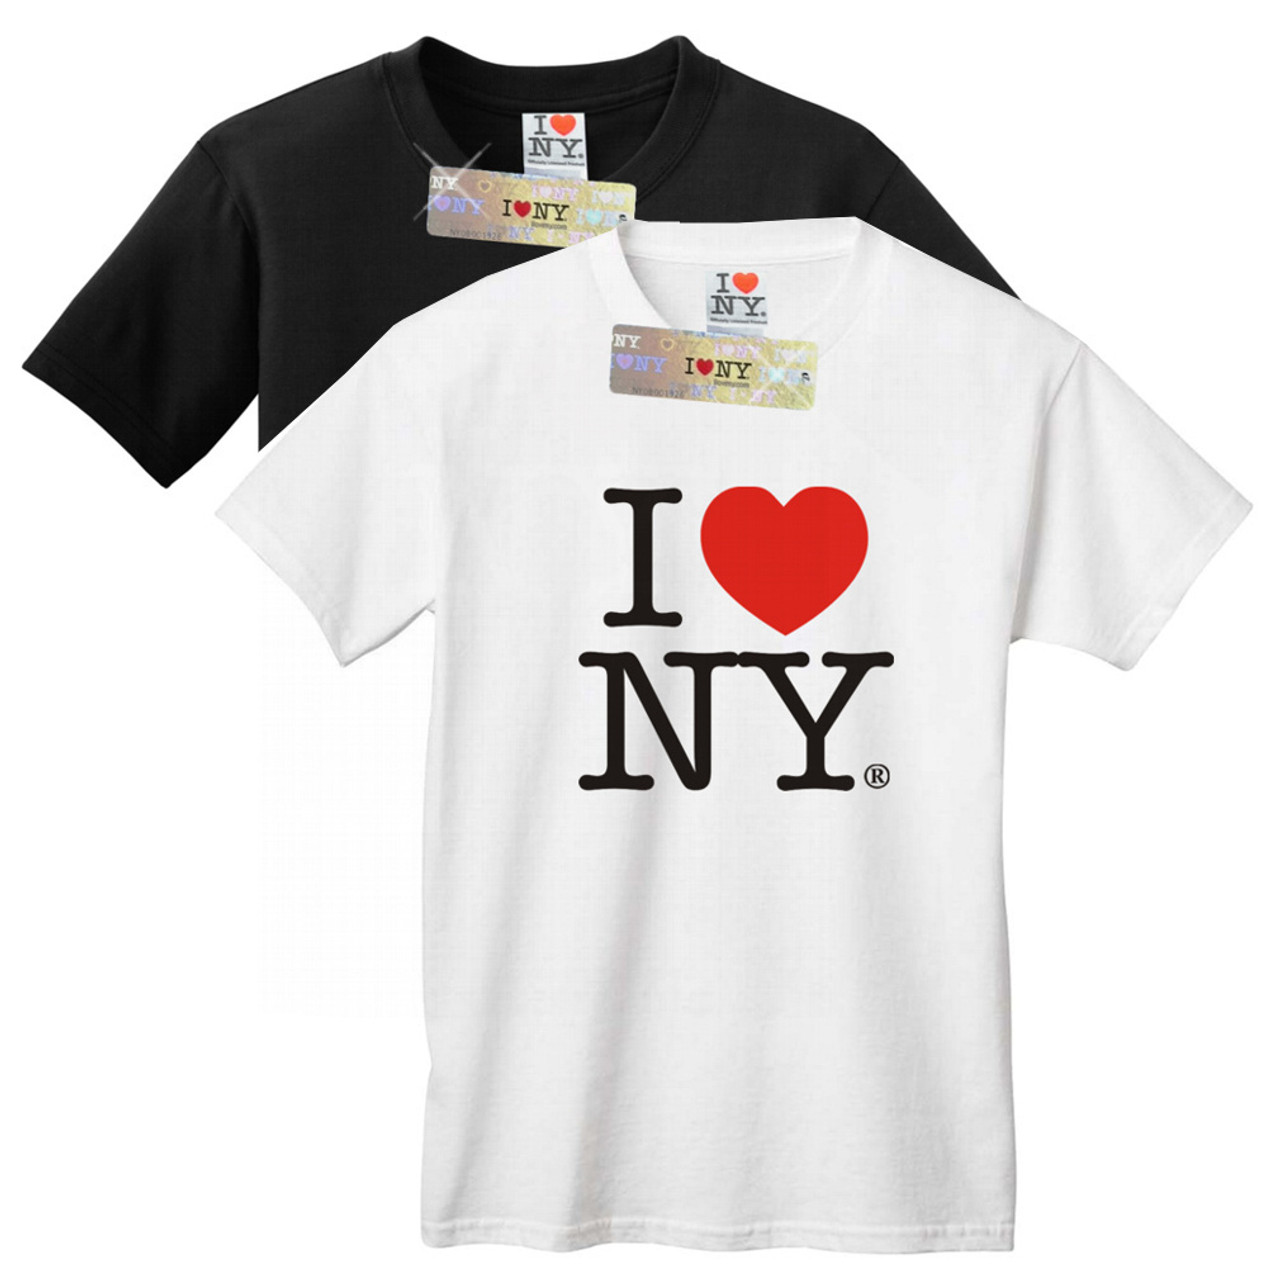 I Love NY T-Shirt. Brand   Clothing 8be53fa6a06